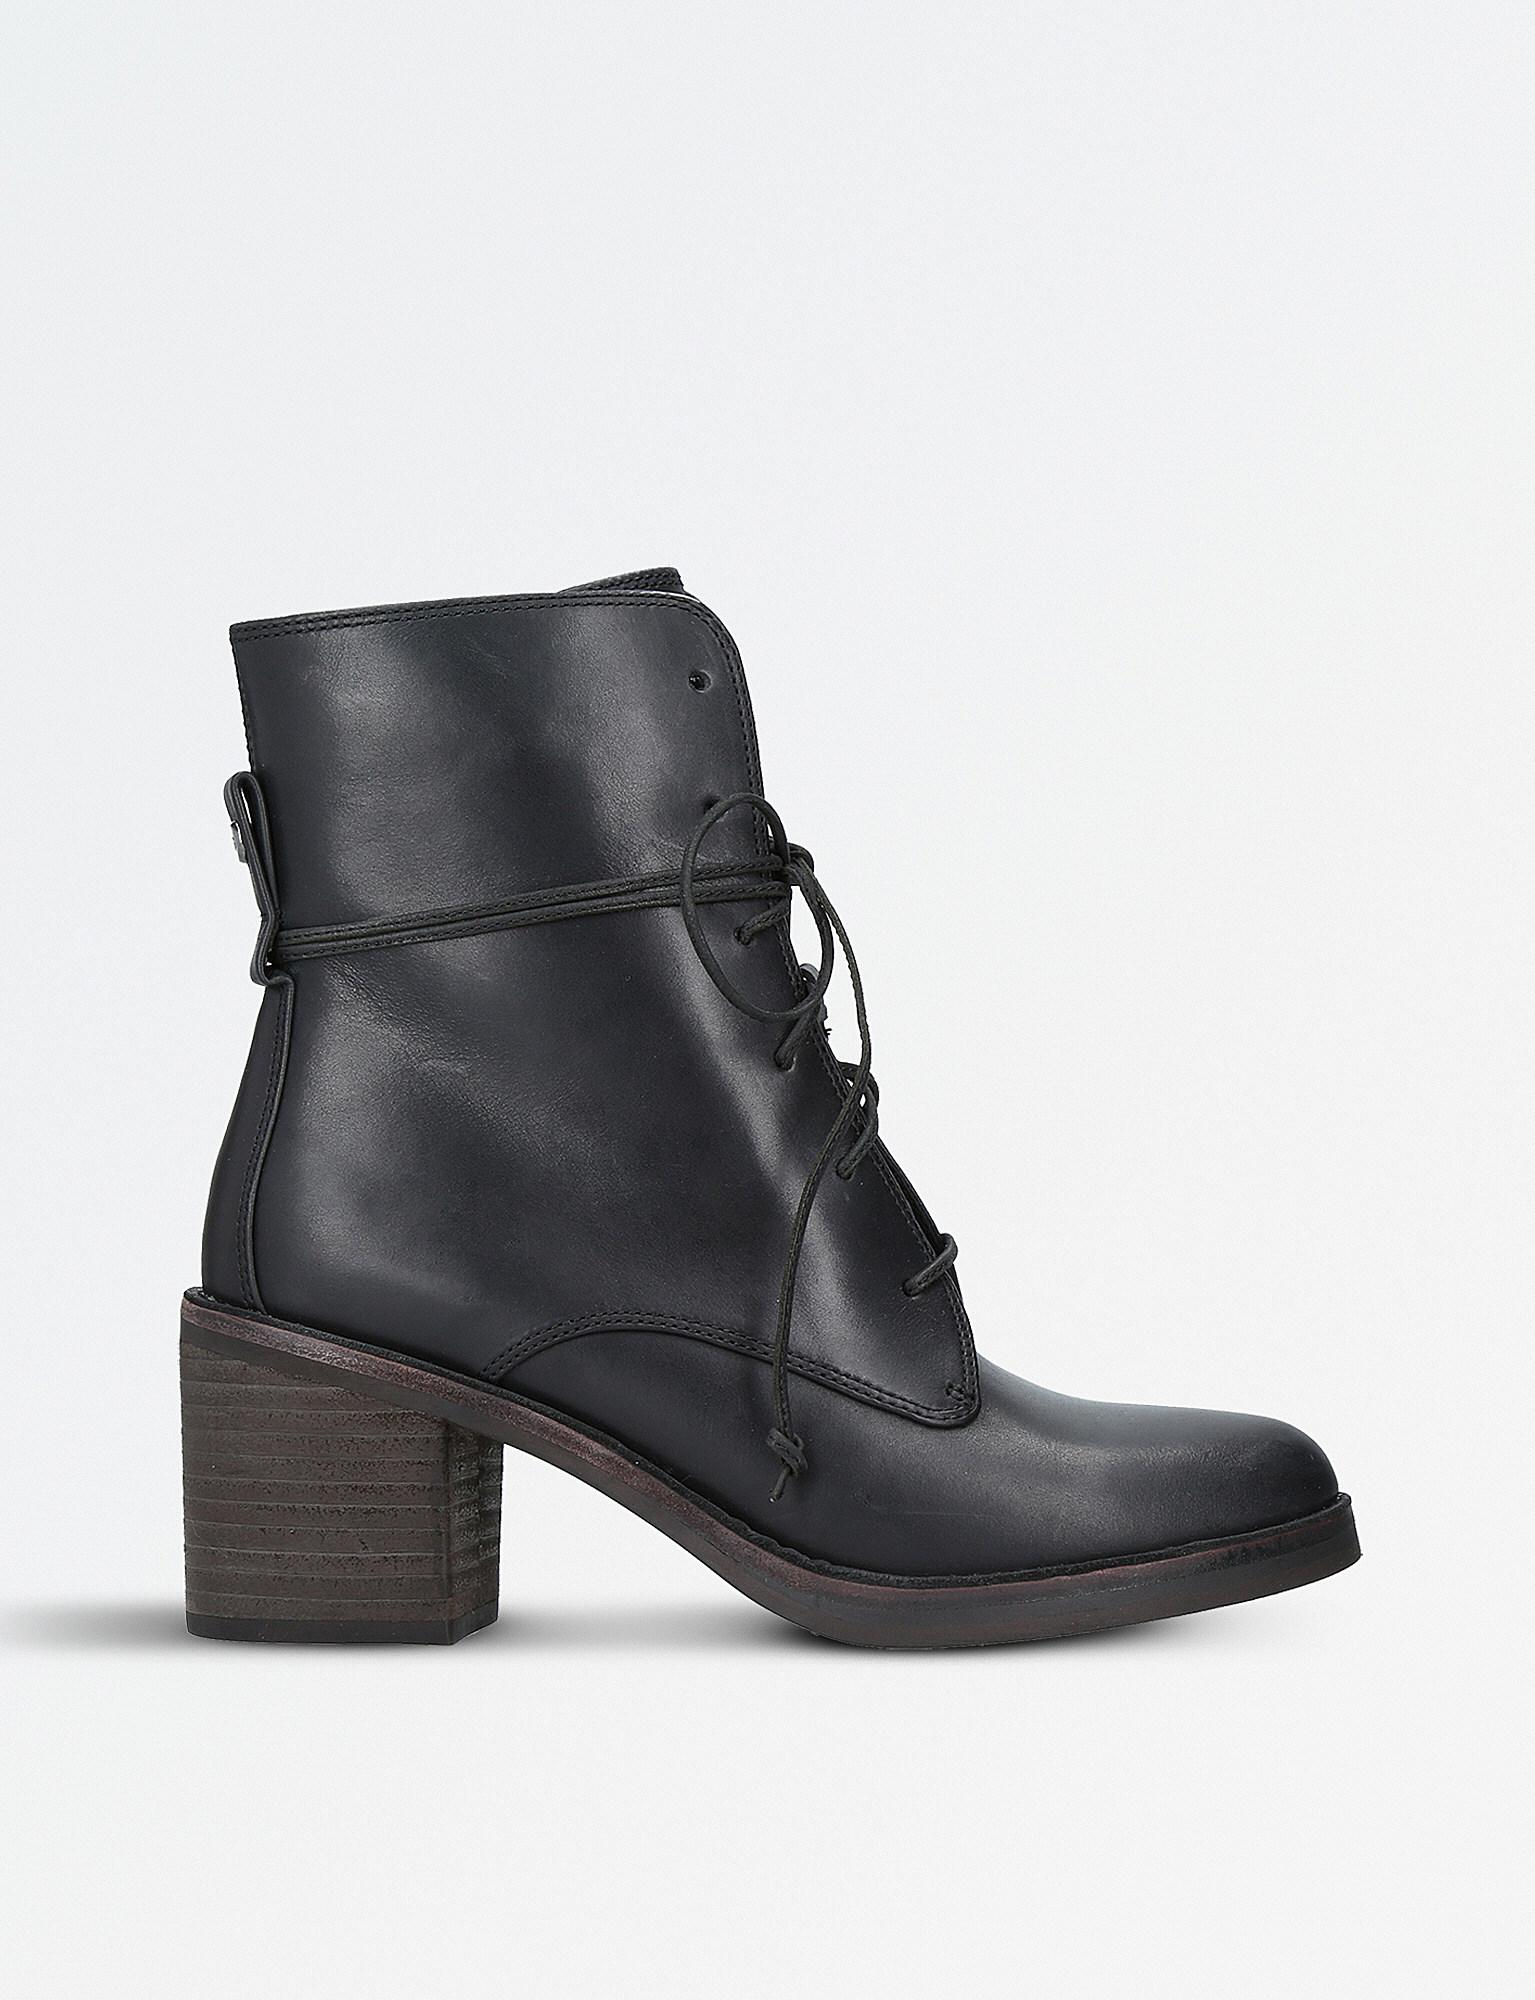 a97f9a26e4b0 UGG Oriana Leather Ankle Boots in Black - Lyst